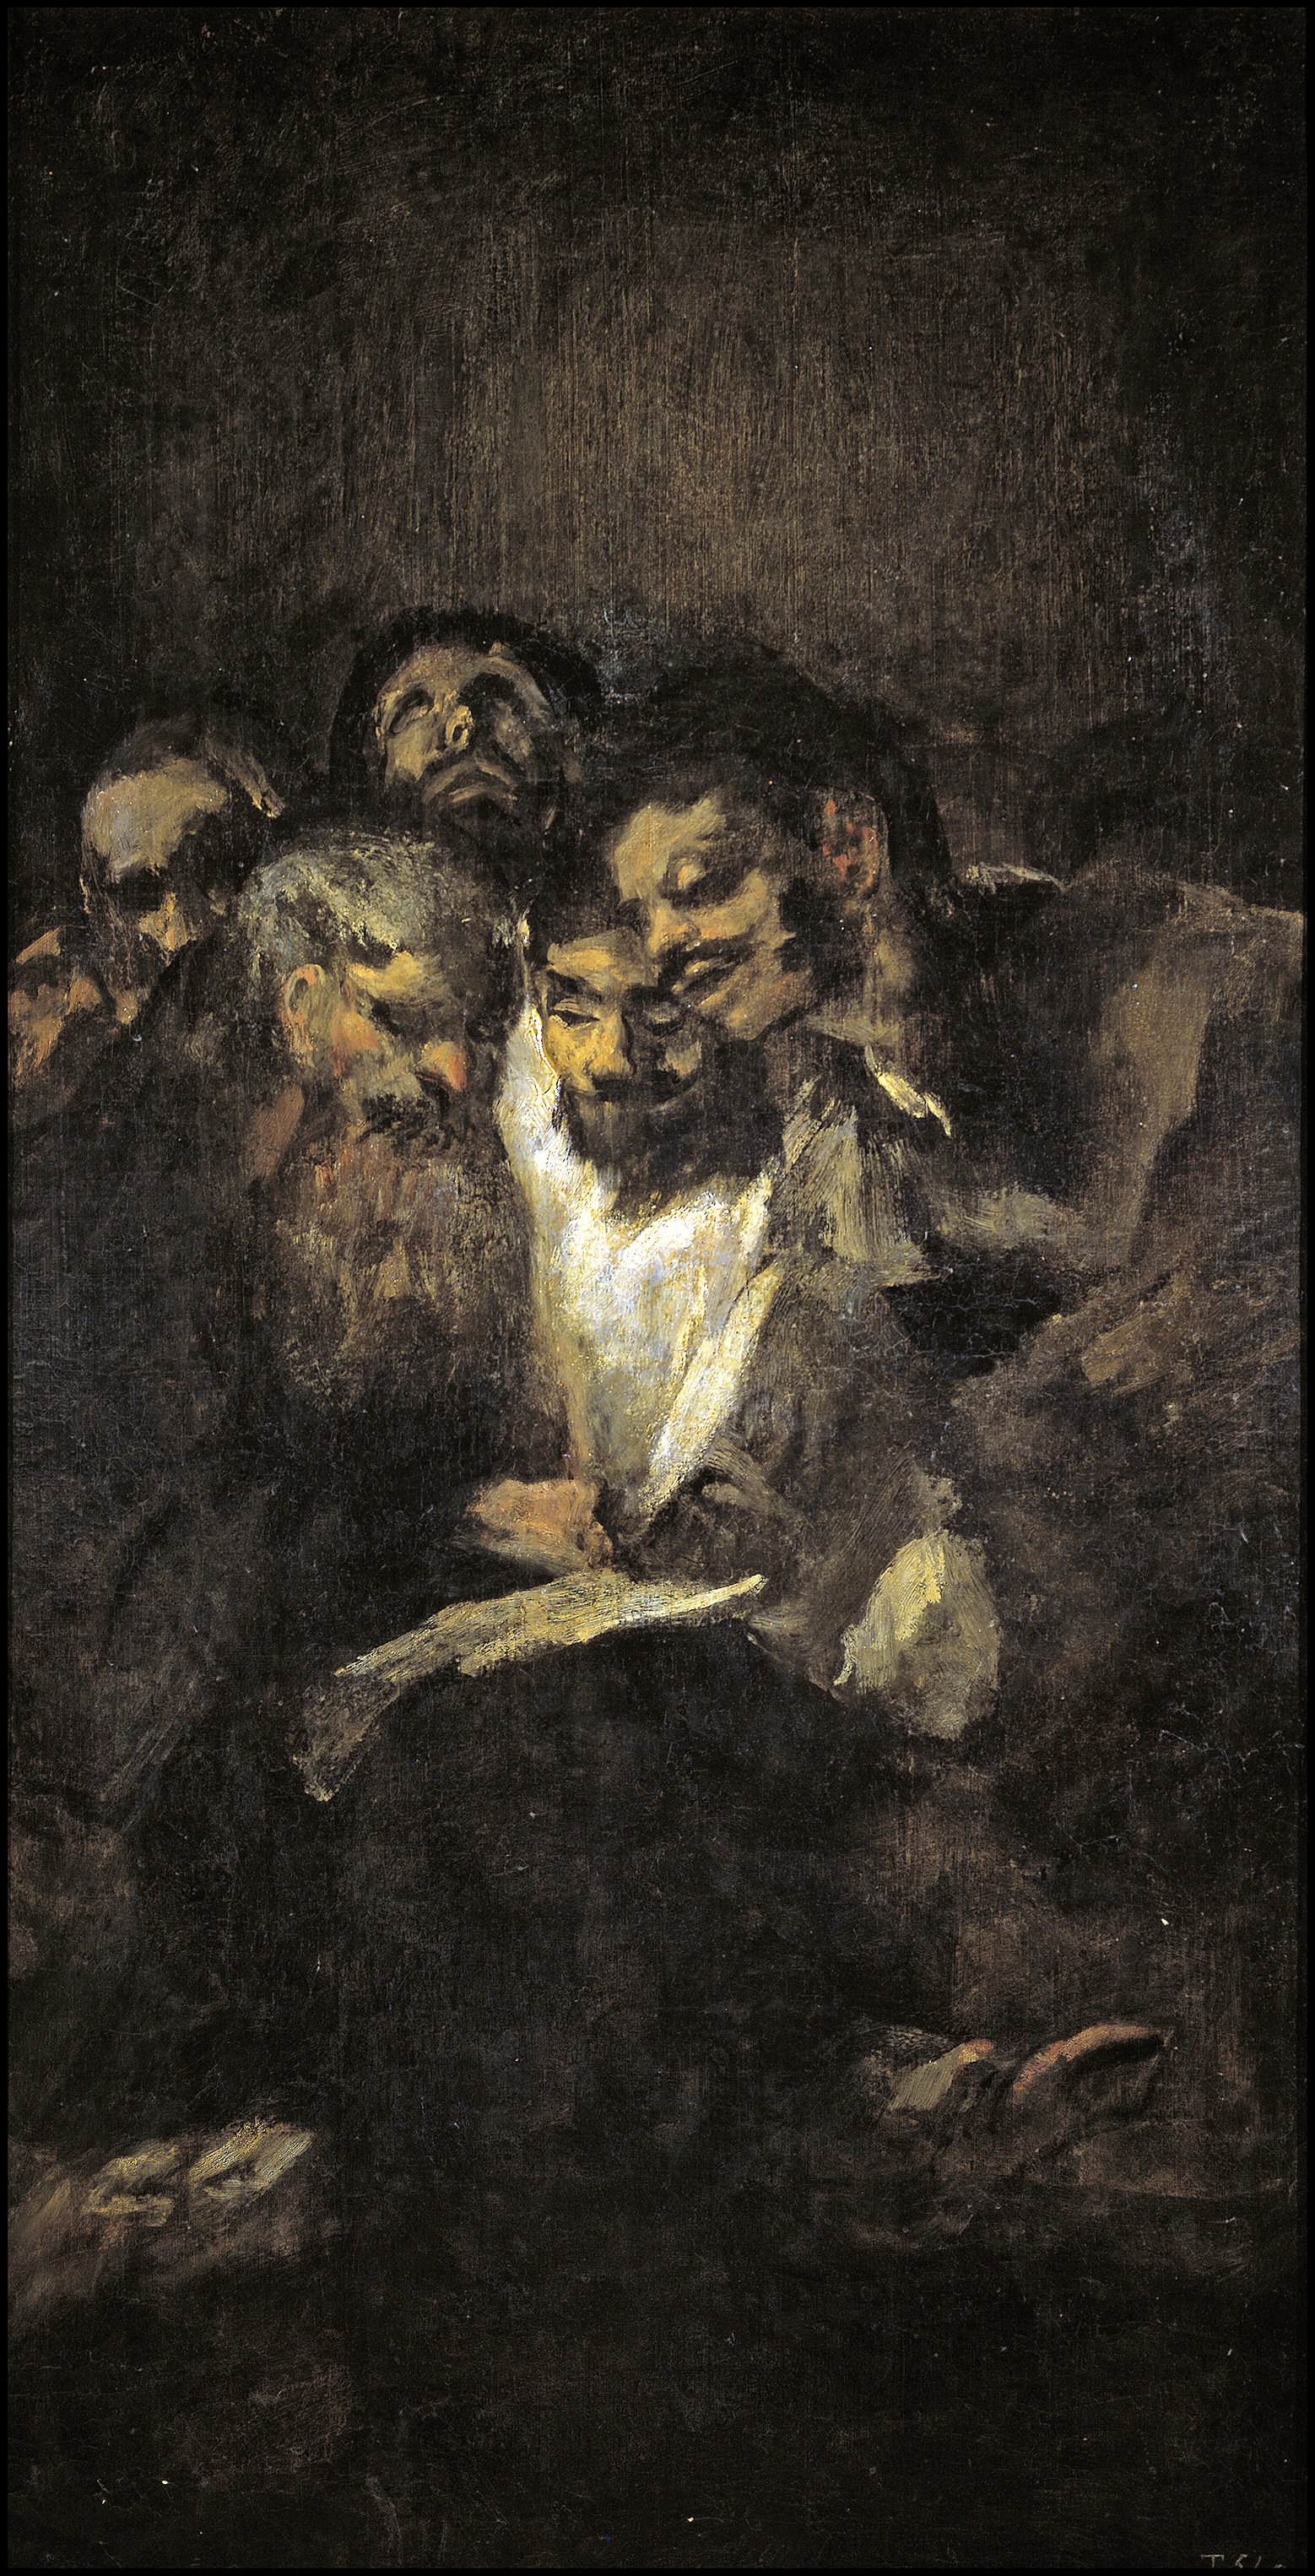 http://upload.wikimedia.org/wikipedia/commons/3/34/Hombres_leyendo.jpg